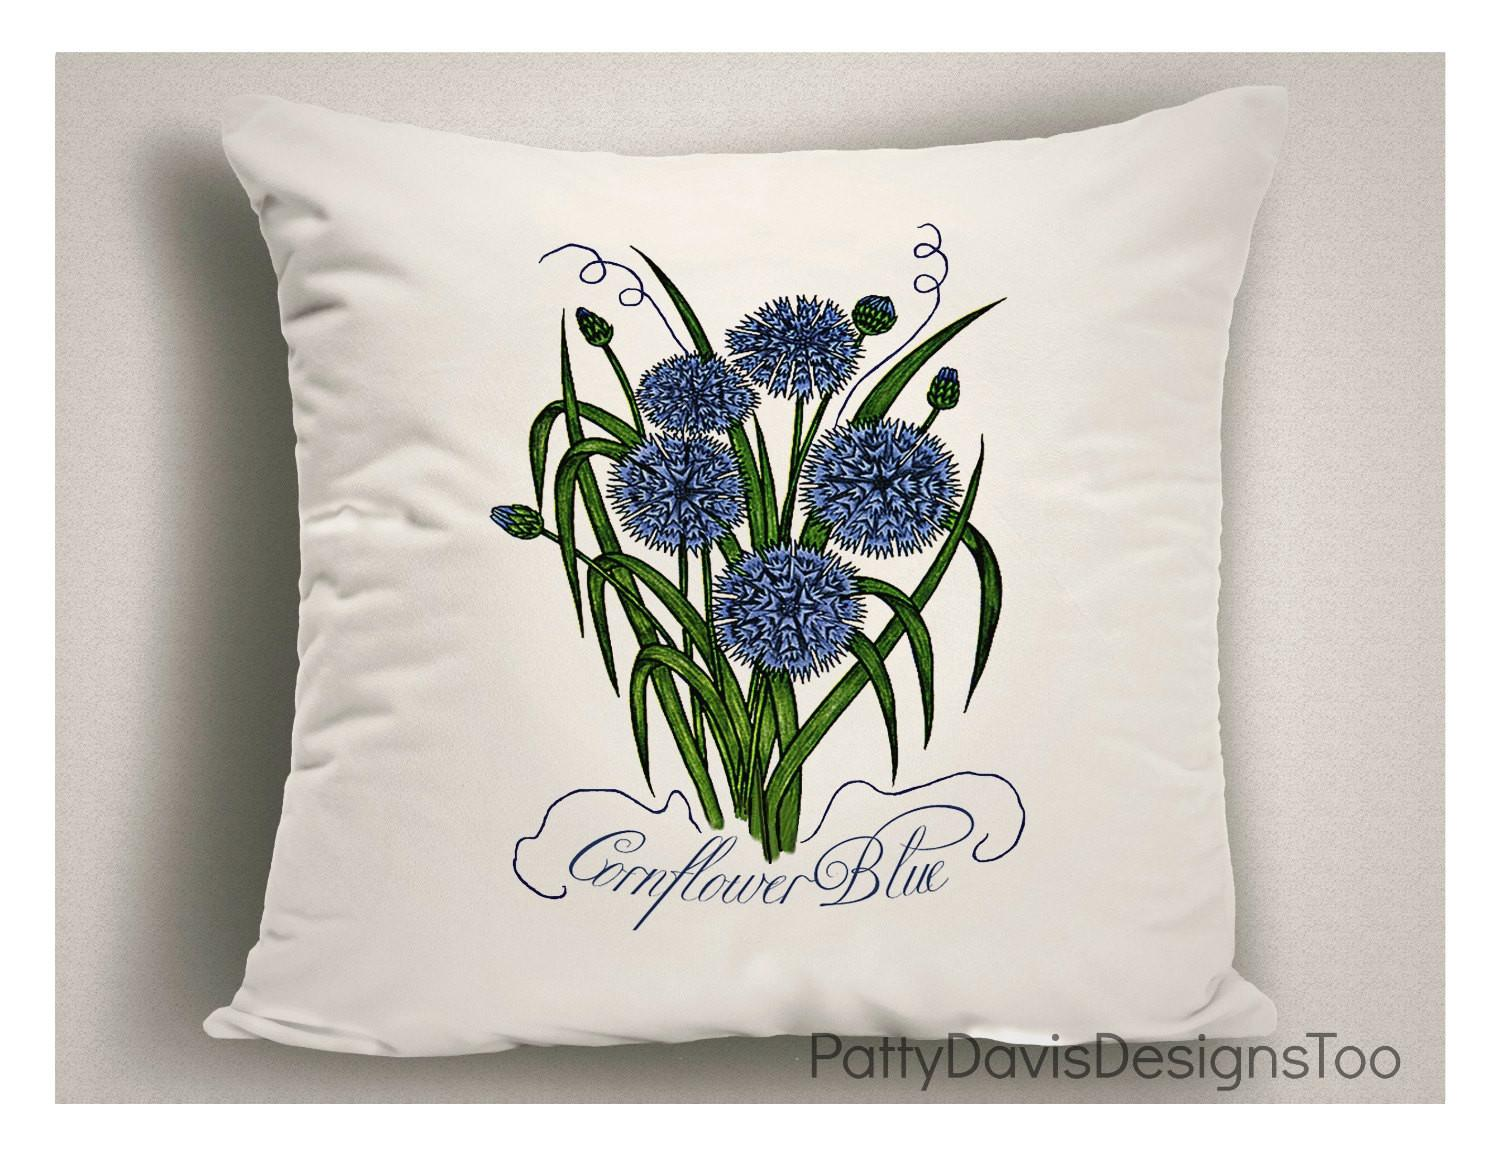 Corn Flower Blue Spring Pillows Throw